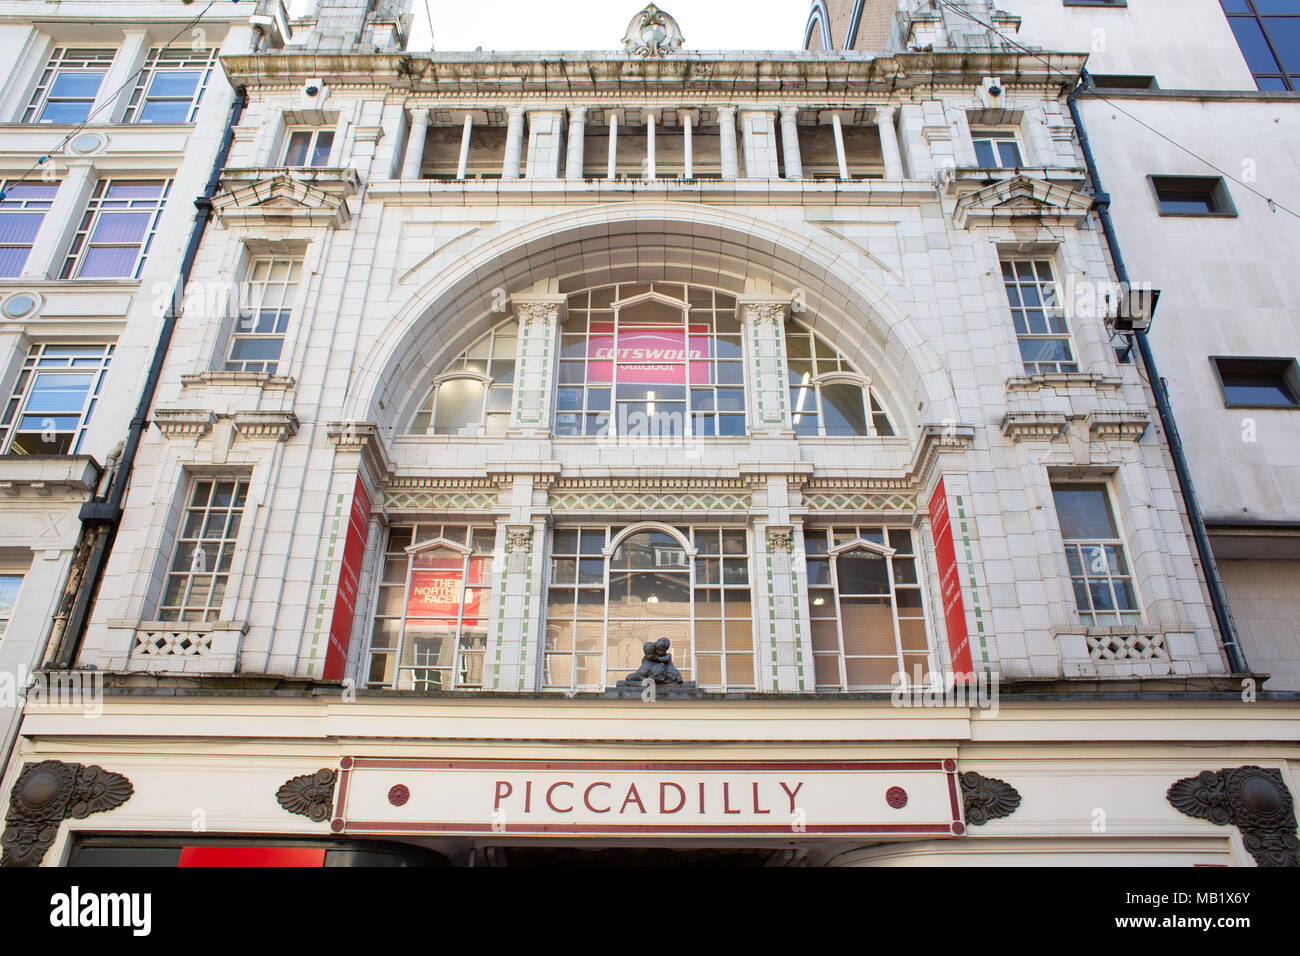 The frontage of Piccadilly arcade on New Street, Birmingham, UK - Stock Image